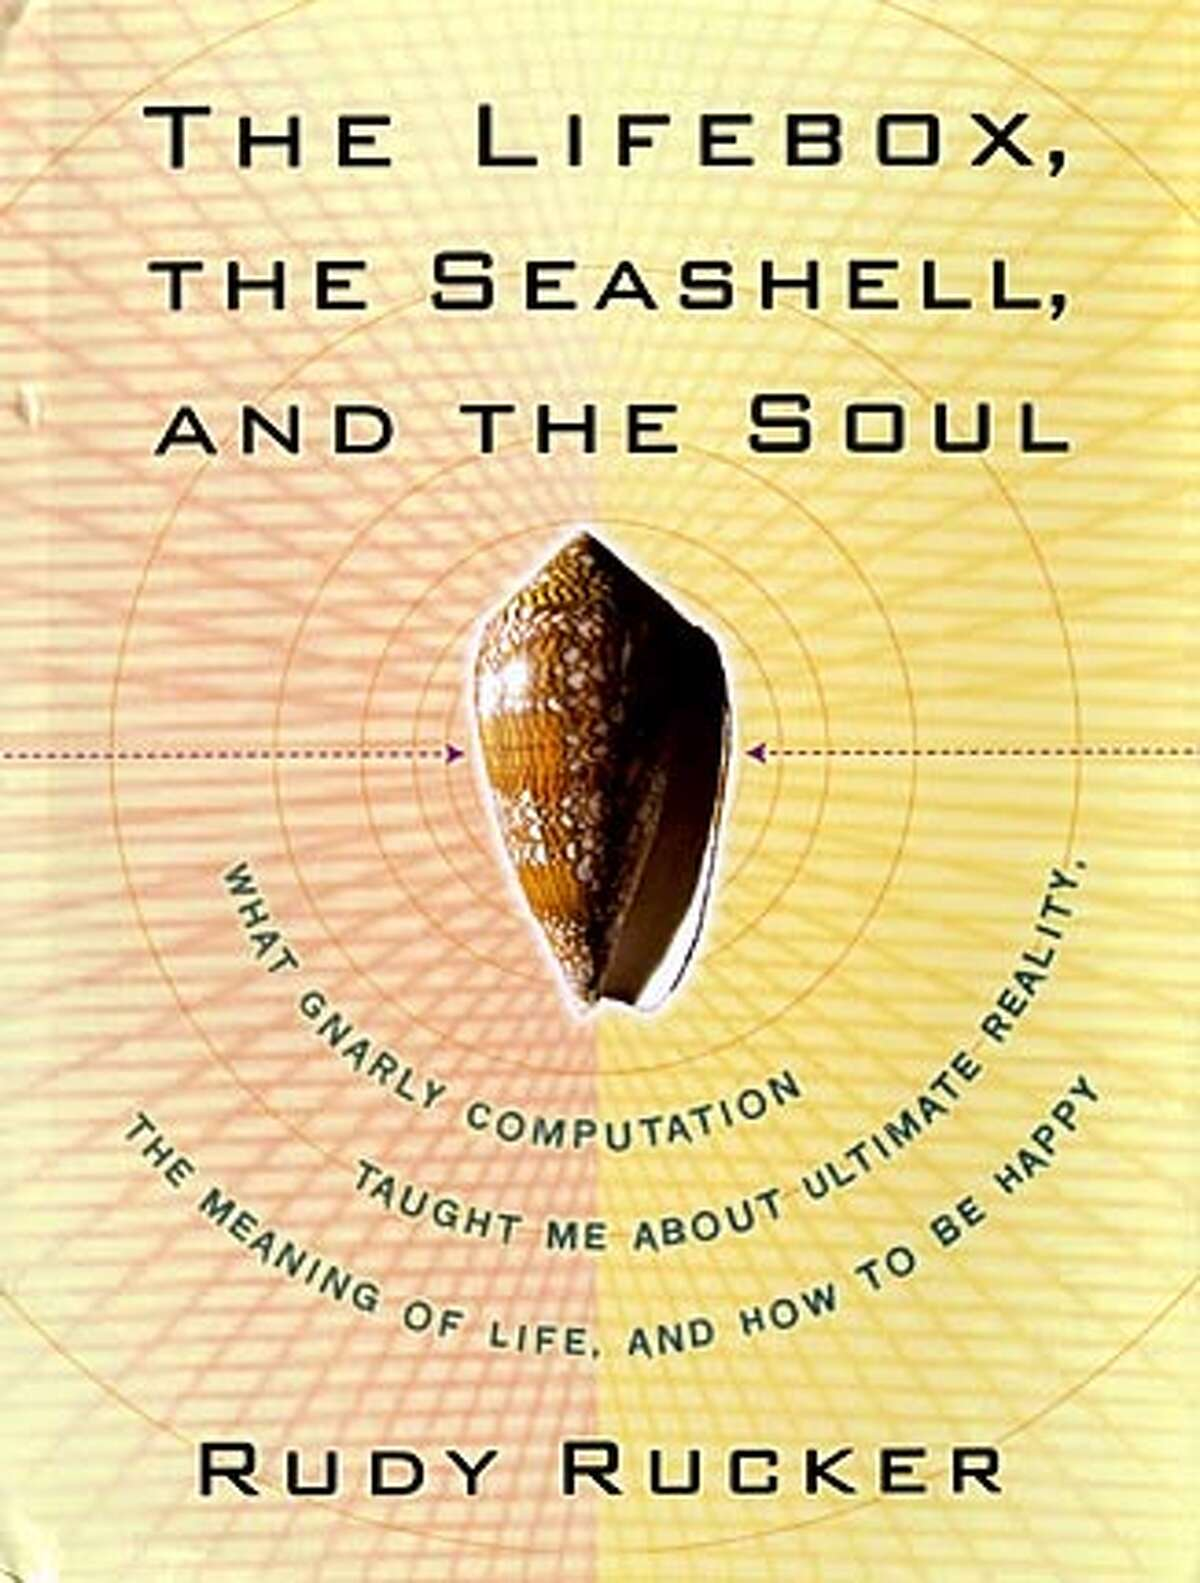 The Lifebox, the Seashell, and the Soul HO